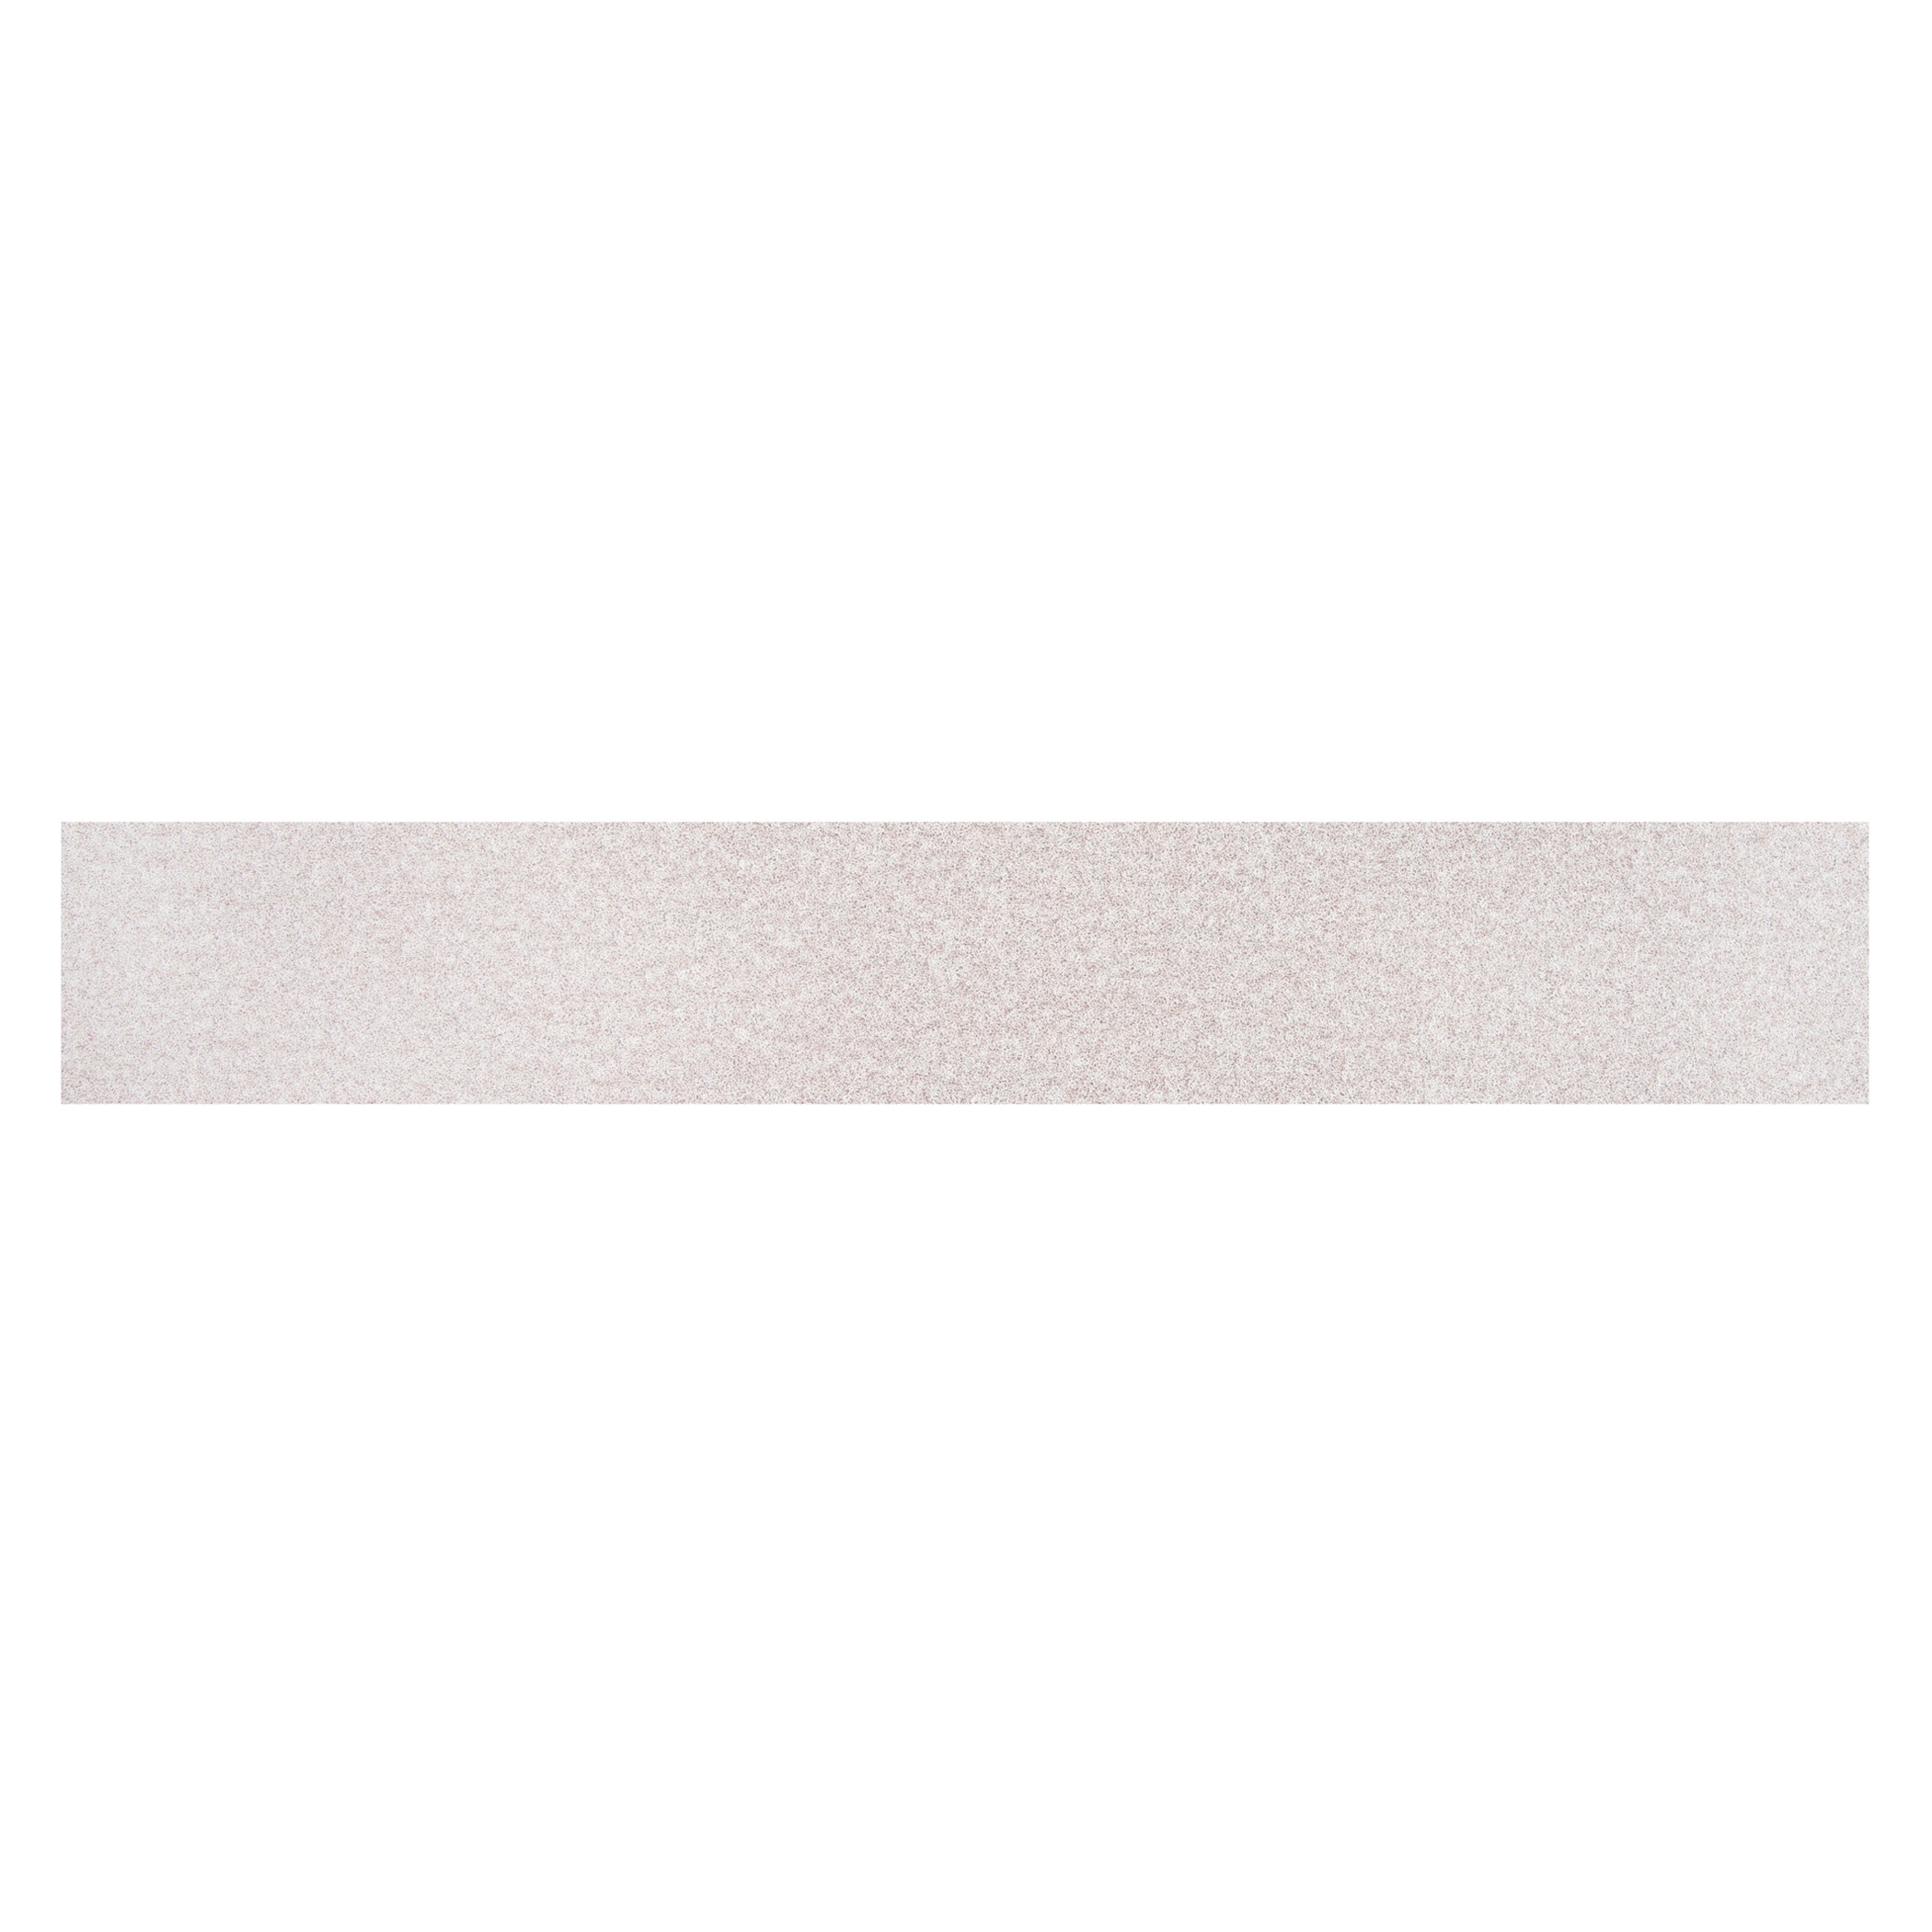 Norton® 66261131644 A275OP Hook and Loop Coated File Strip, 16-1/2 in L x 2-3/4 in W, P120 Grit, Medium Grade, Aluminum Oxide Abrasive, Anti-Loading Paper Backing